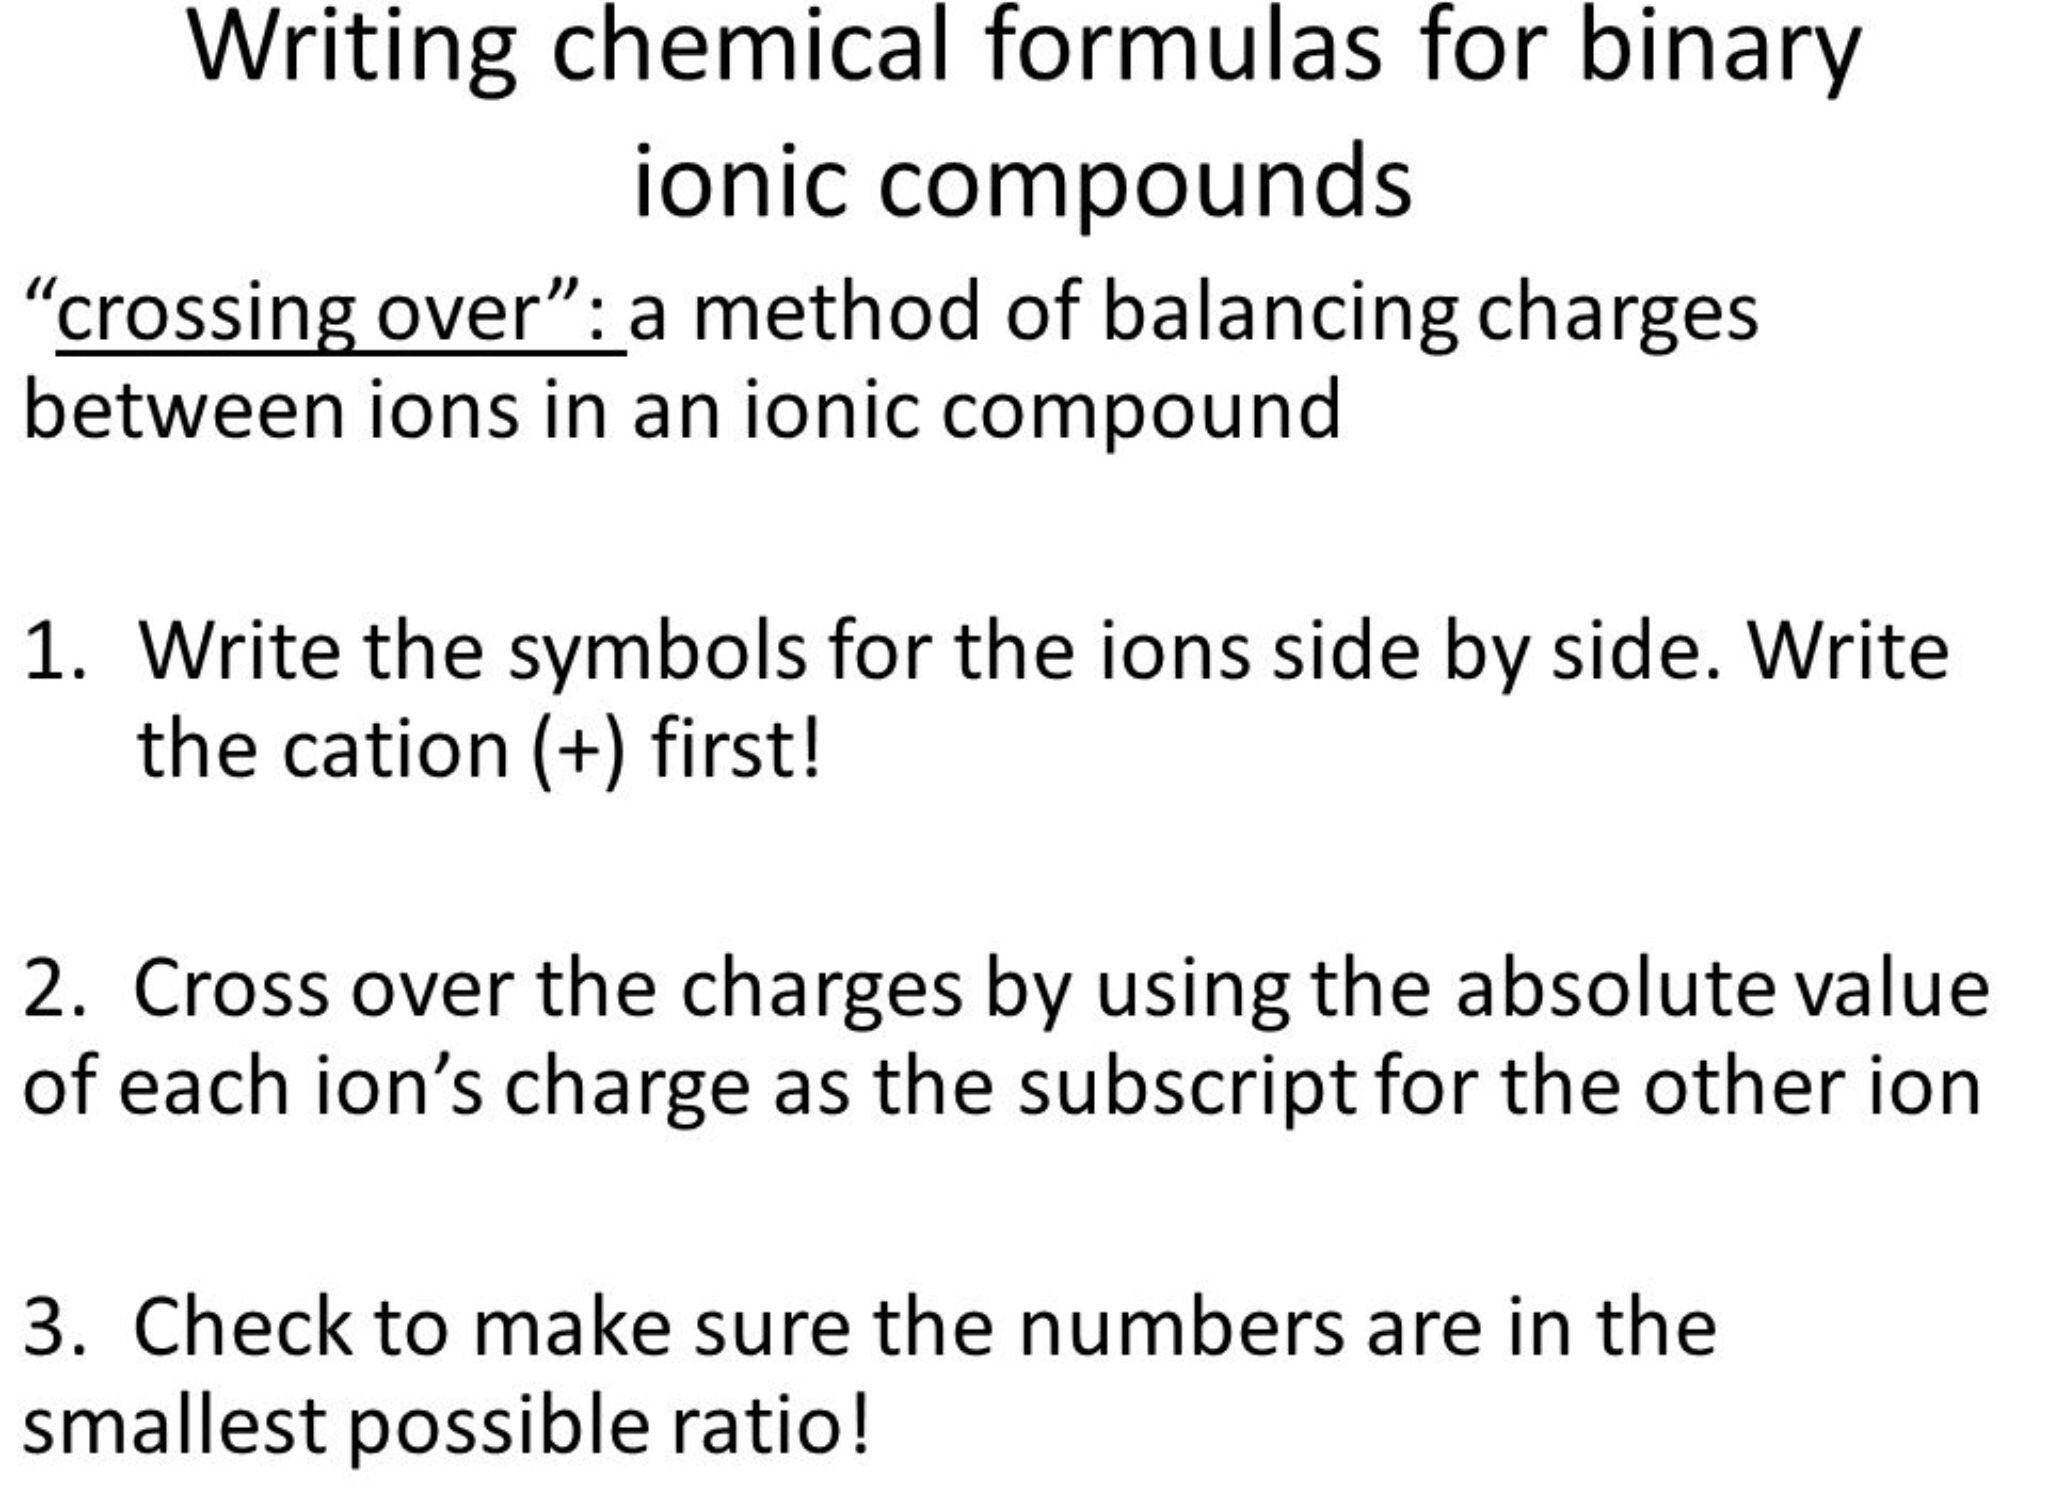 Writing Chemical Formulas For Binary Ionic Compounds